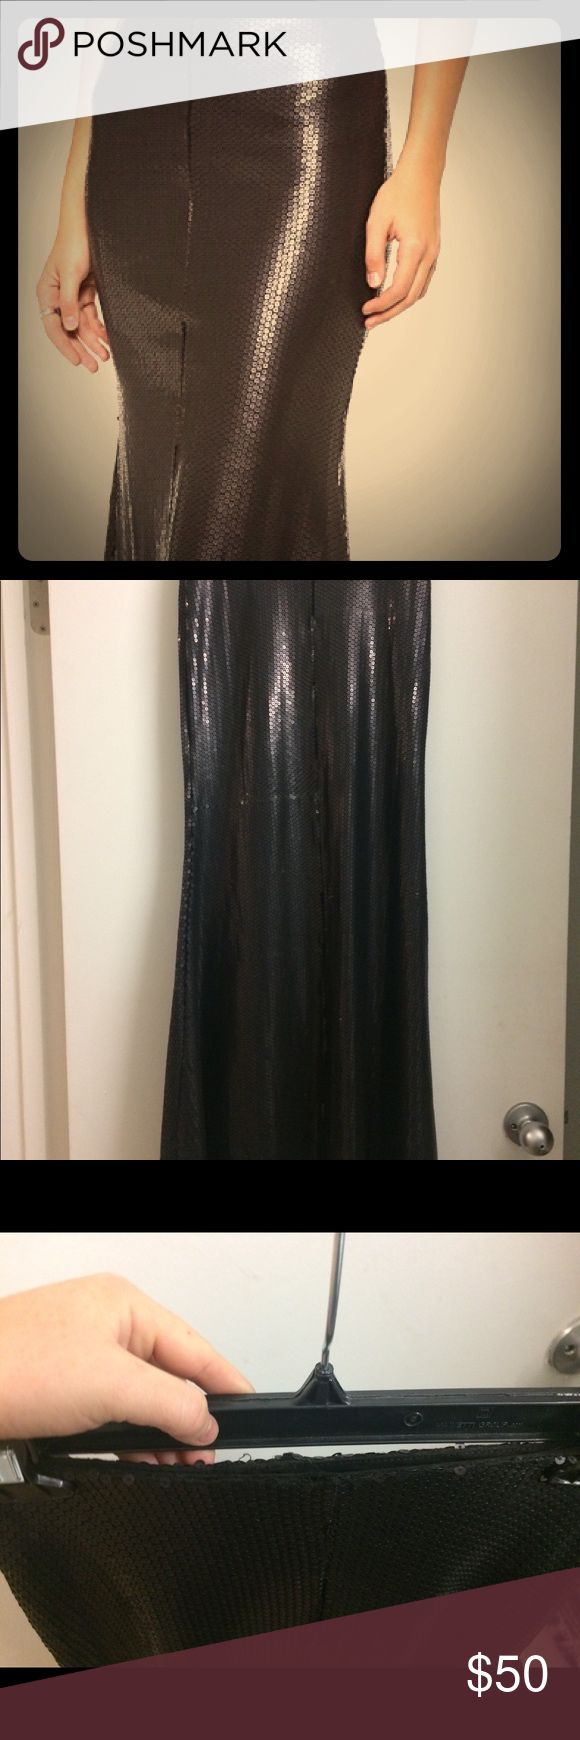 """Line & Dot mermaid black sequin maxi skirt Waist: 26-27"""" at natural waist Length: 41 inches Material: Shell is 100%polyester, lining is 94% polyester, 6% spandex  Only worn a few times, great fit, stretches with wear. Good condition. Sequins are all intact, few bent around the backside. Fish tailed hem with a covered elastic waist. Partially lined. Higher rise at natural waist  Skirt only for sale Line & Dot Skirts Maxi"""